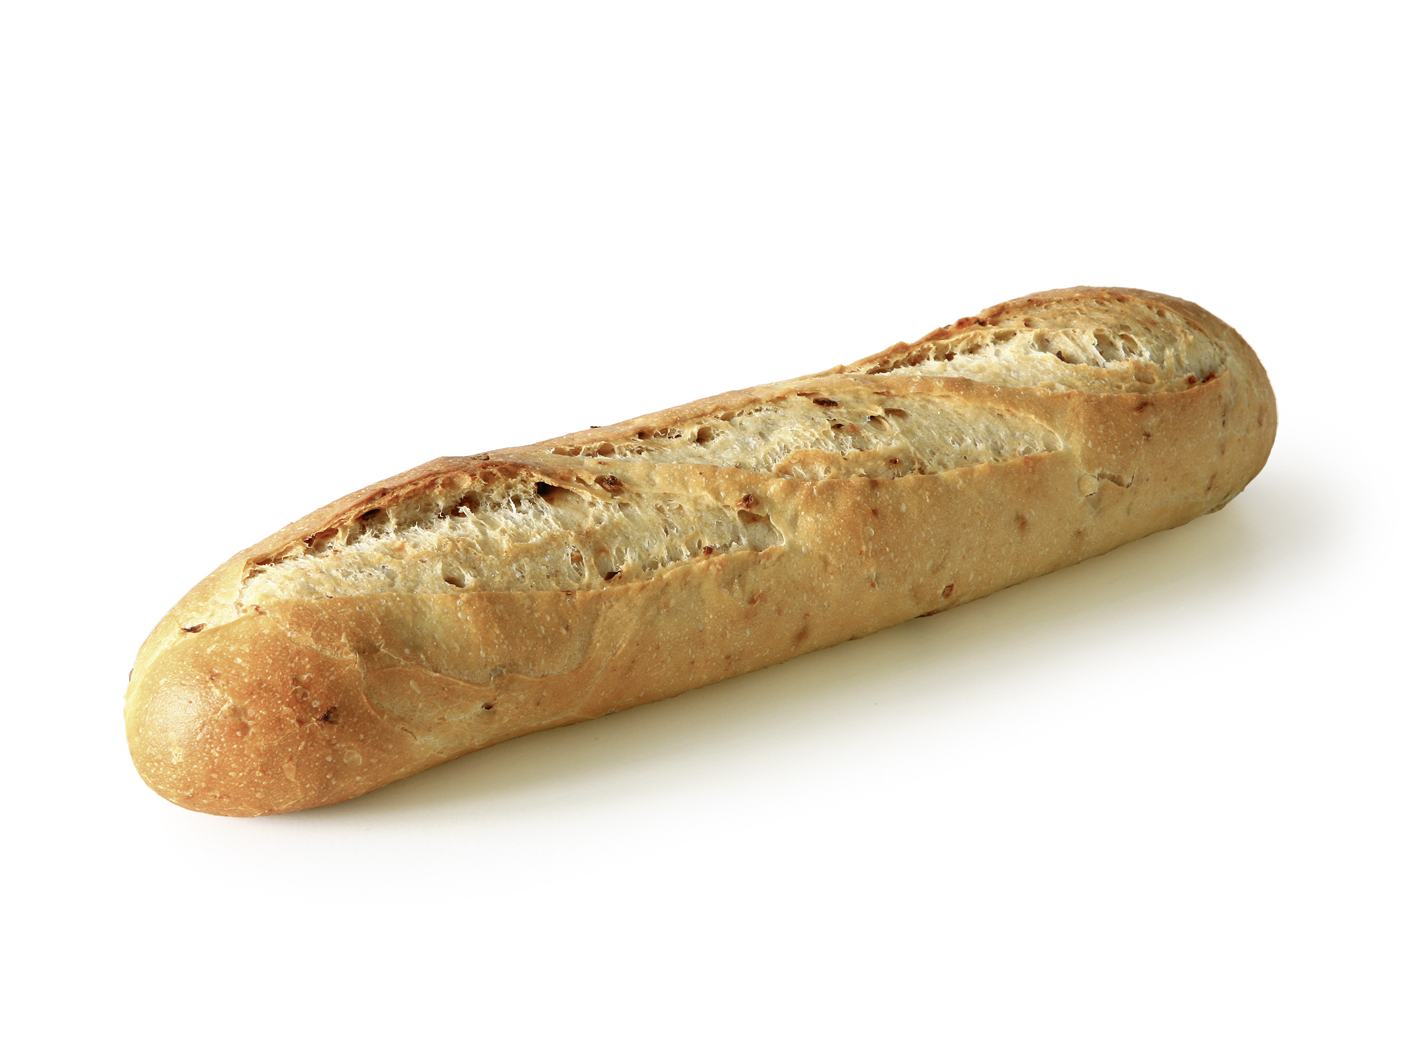 Onion Baguette - Wheat bread baked with 5.7% roasted onions length: 28 cm